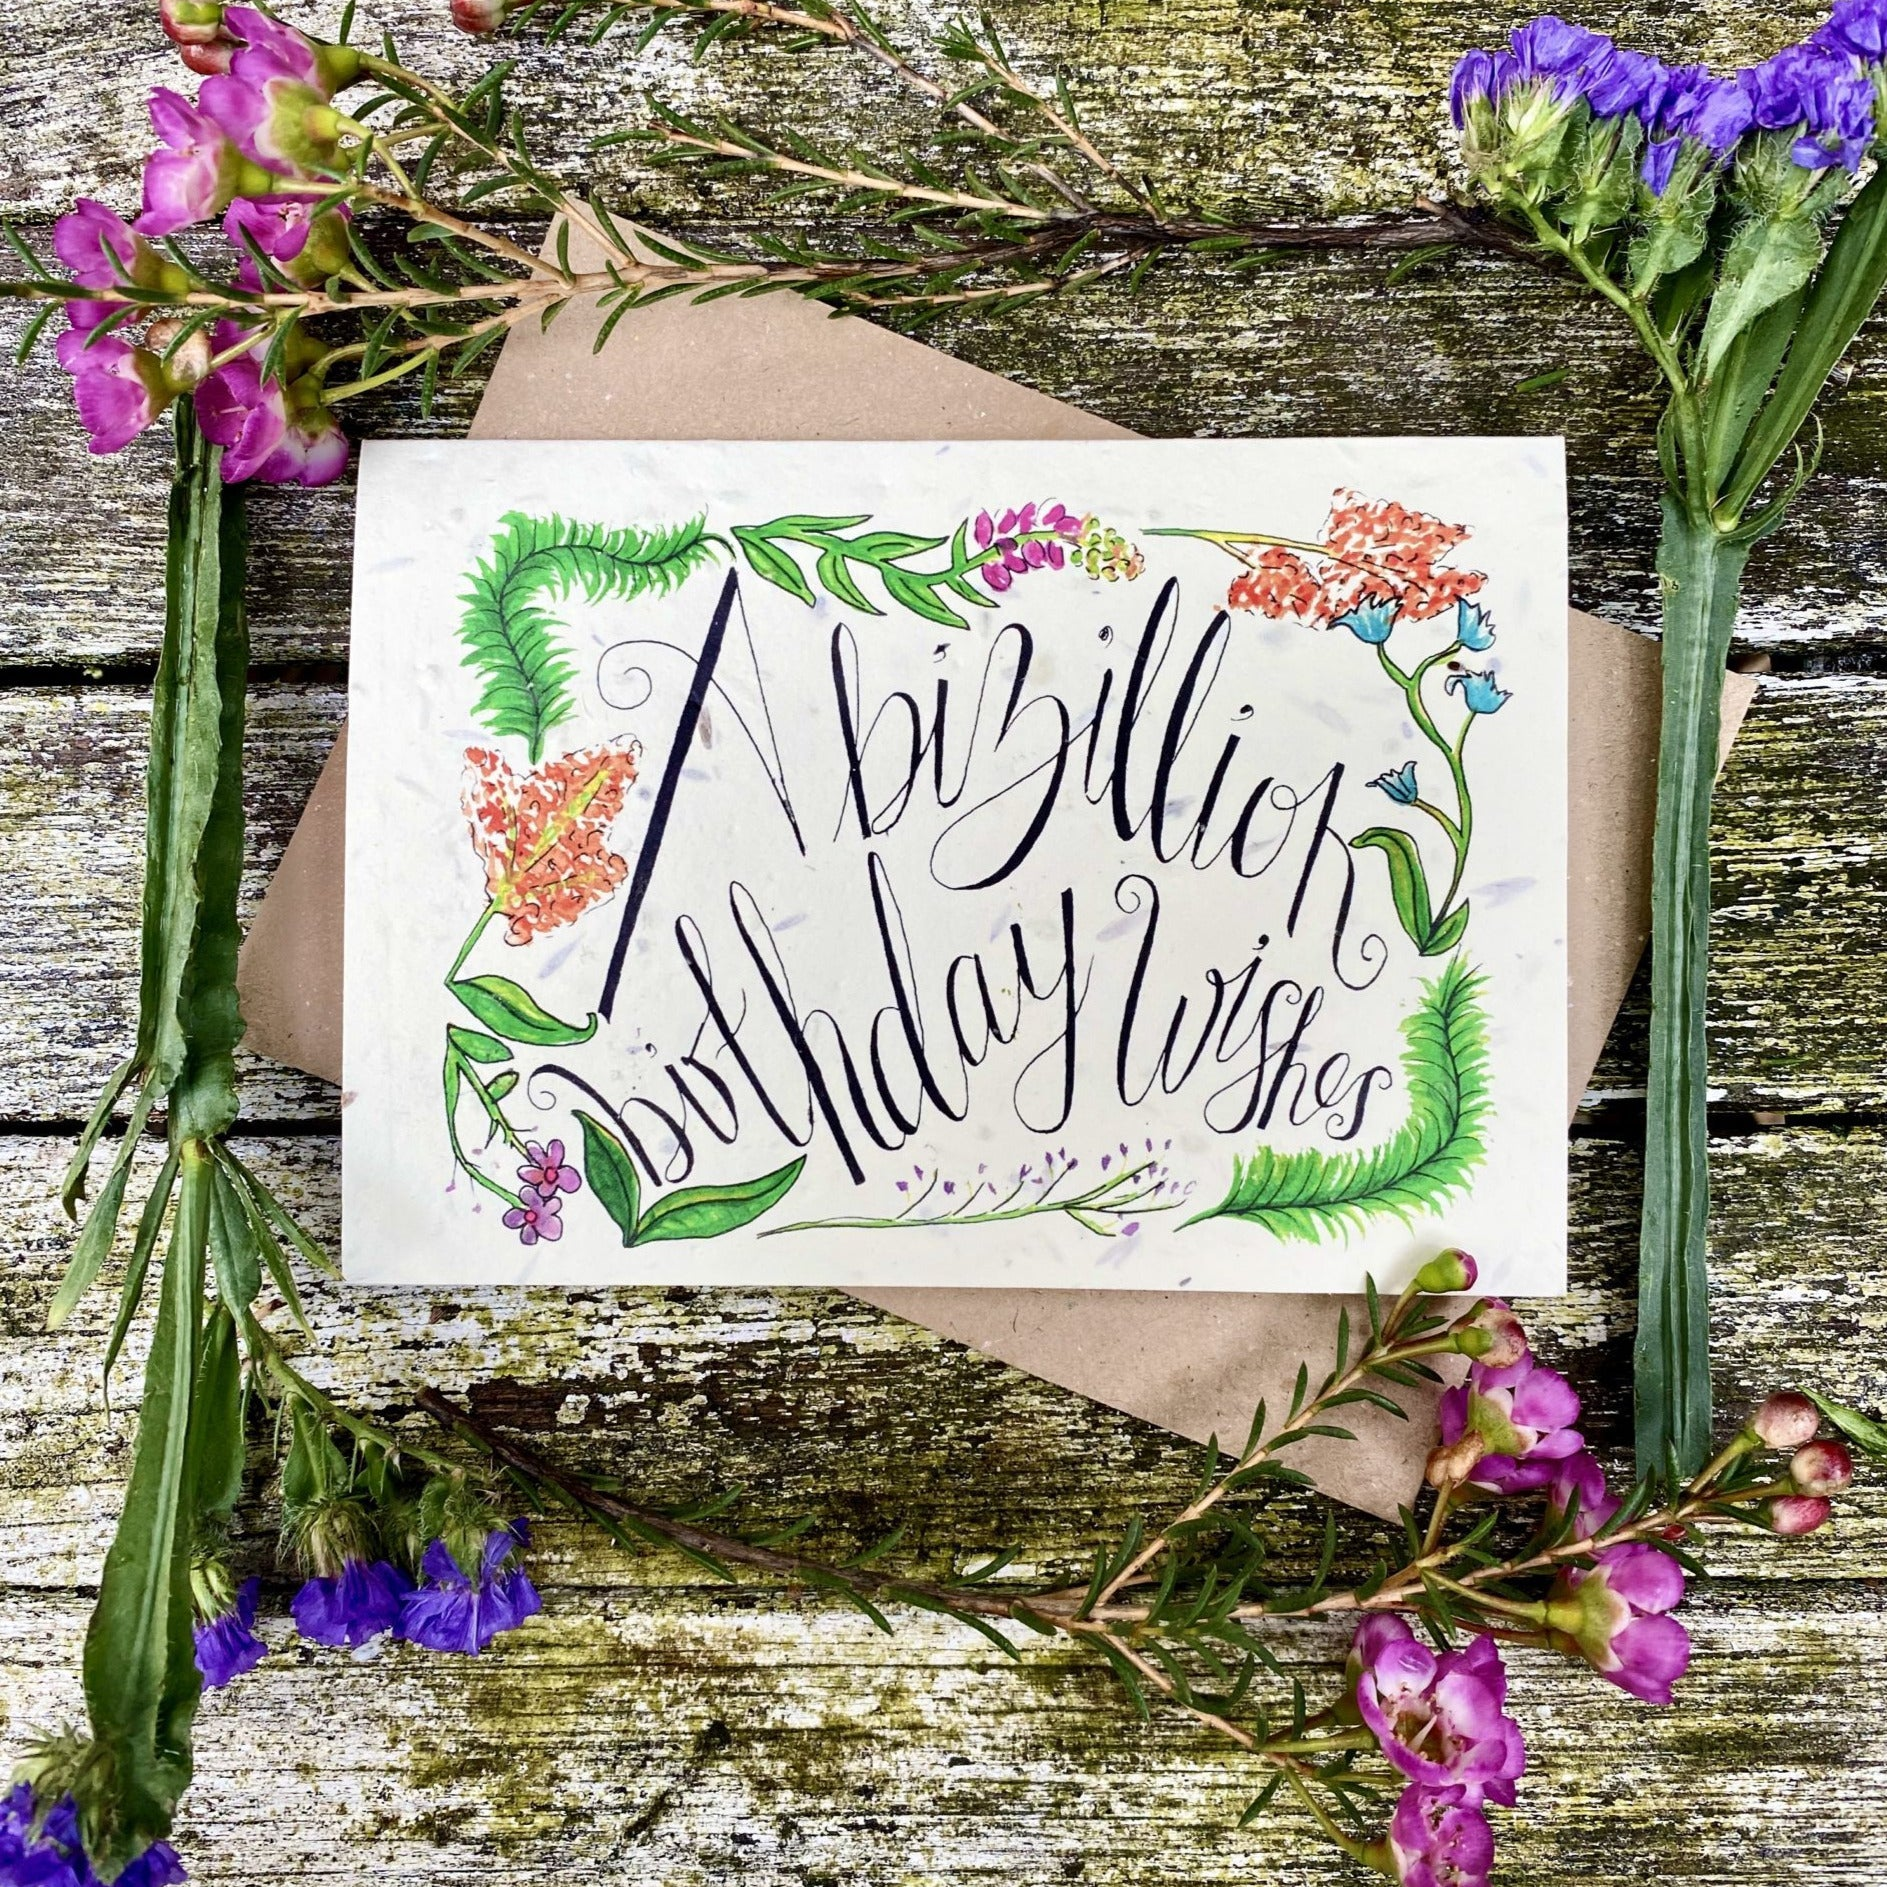 A Bizillion Birthday Wishes - Plantable Wildflower Card | Greetings Card - The Naughty Shrew